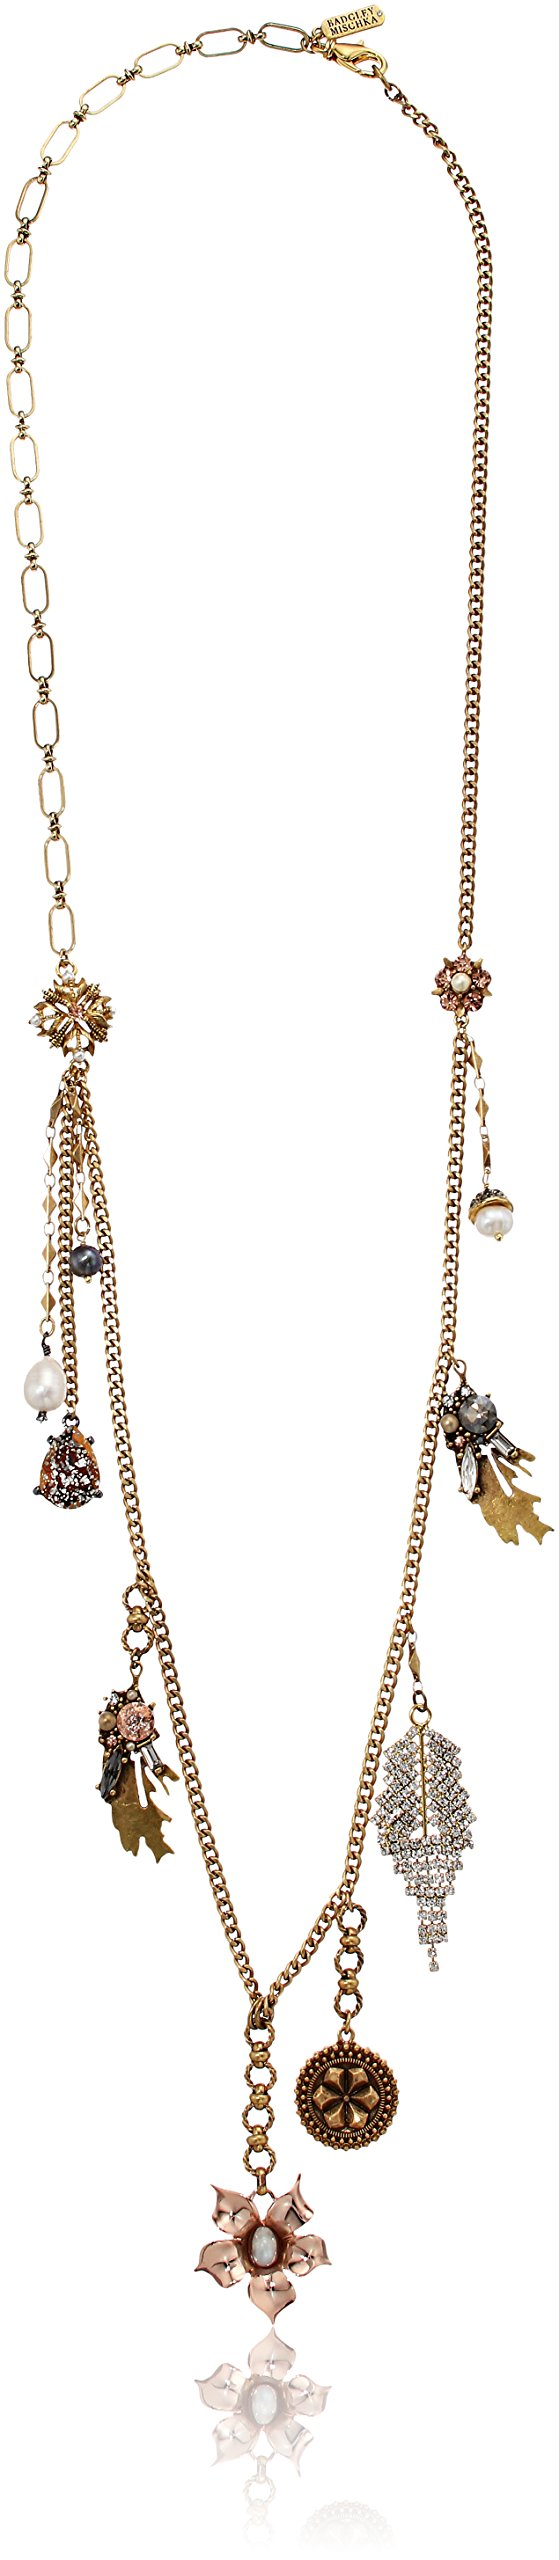 Badgley Mischka Flower and Charm Necklace